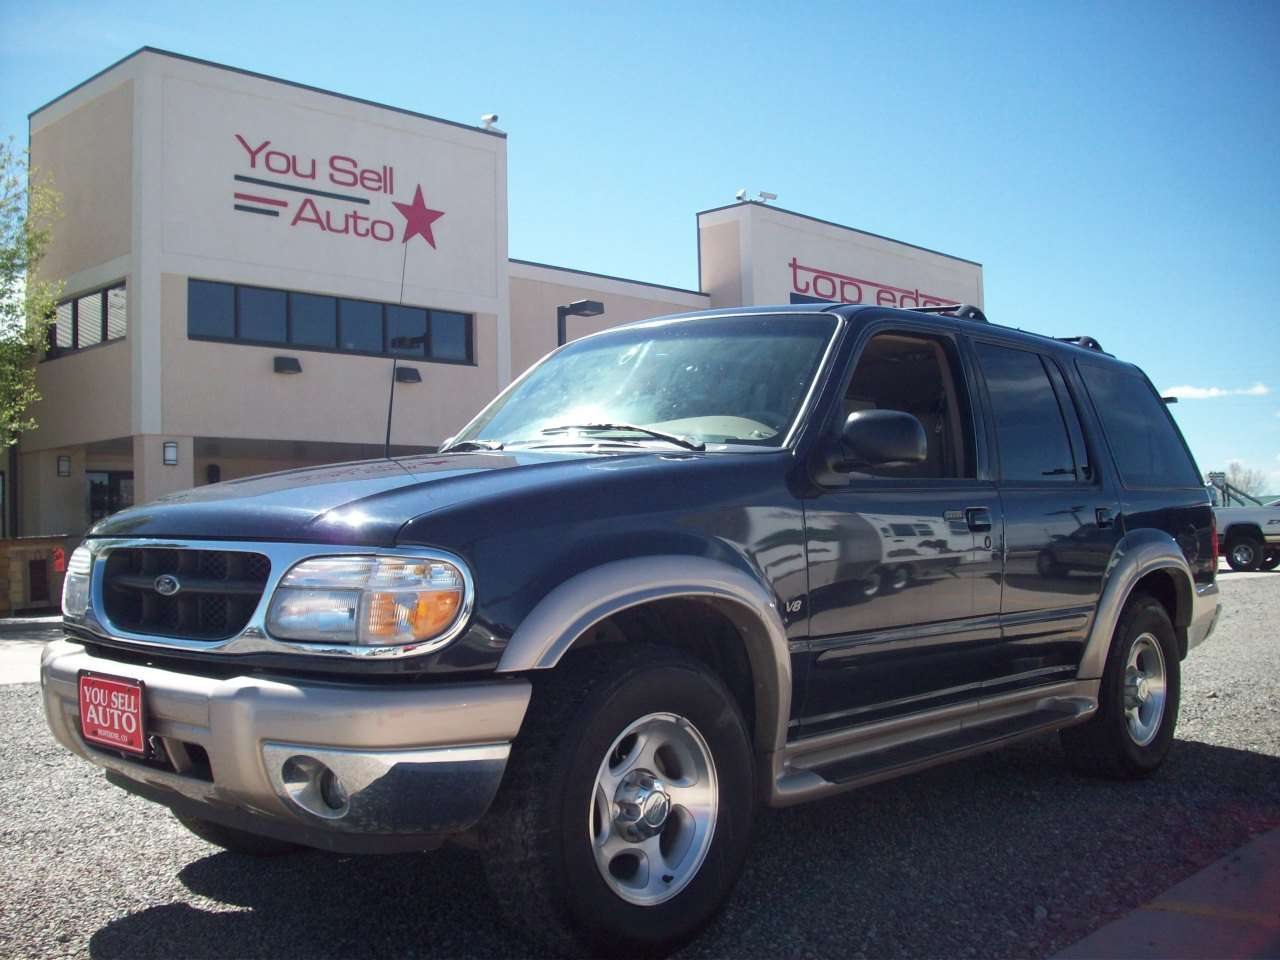 2001 FORD EXPLORER Eddie Bauer @ $6,975 | You Sell Auto